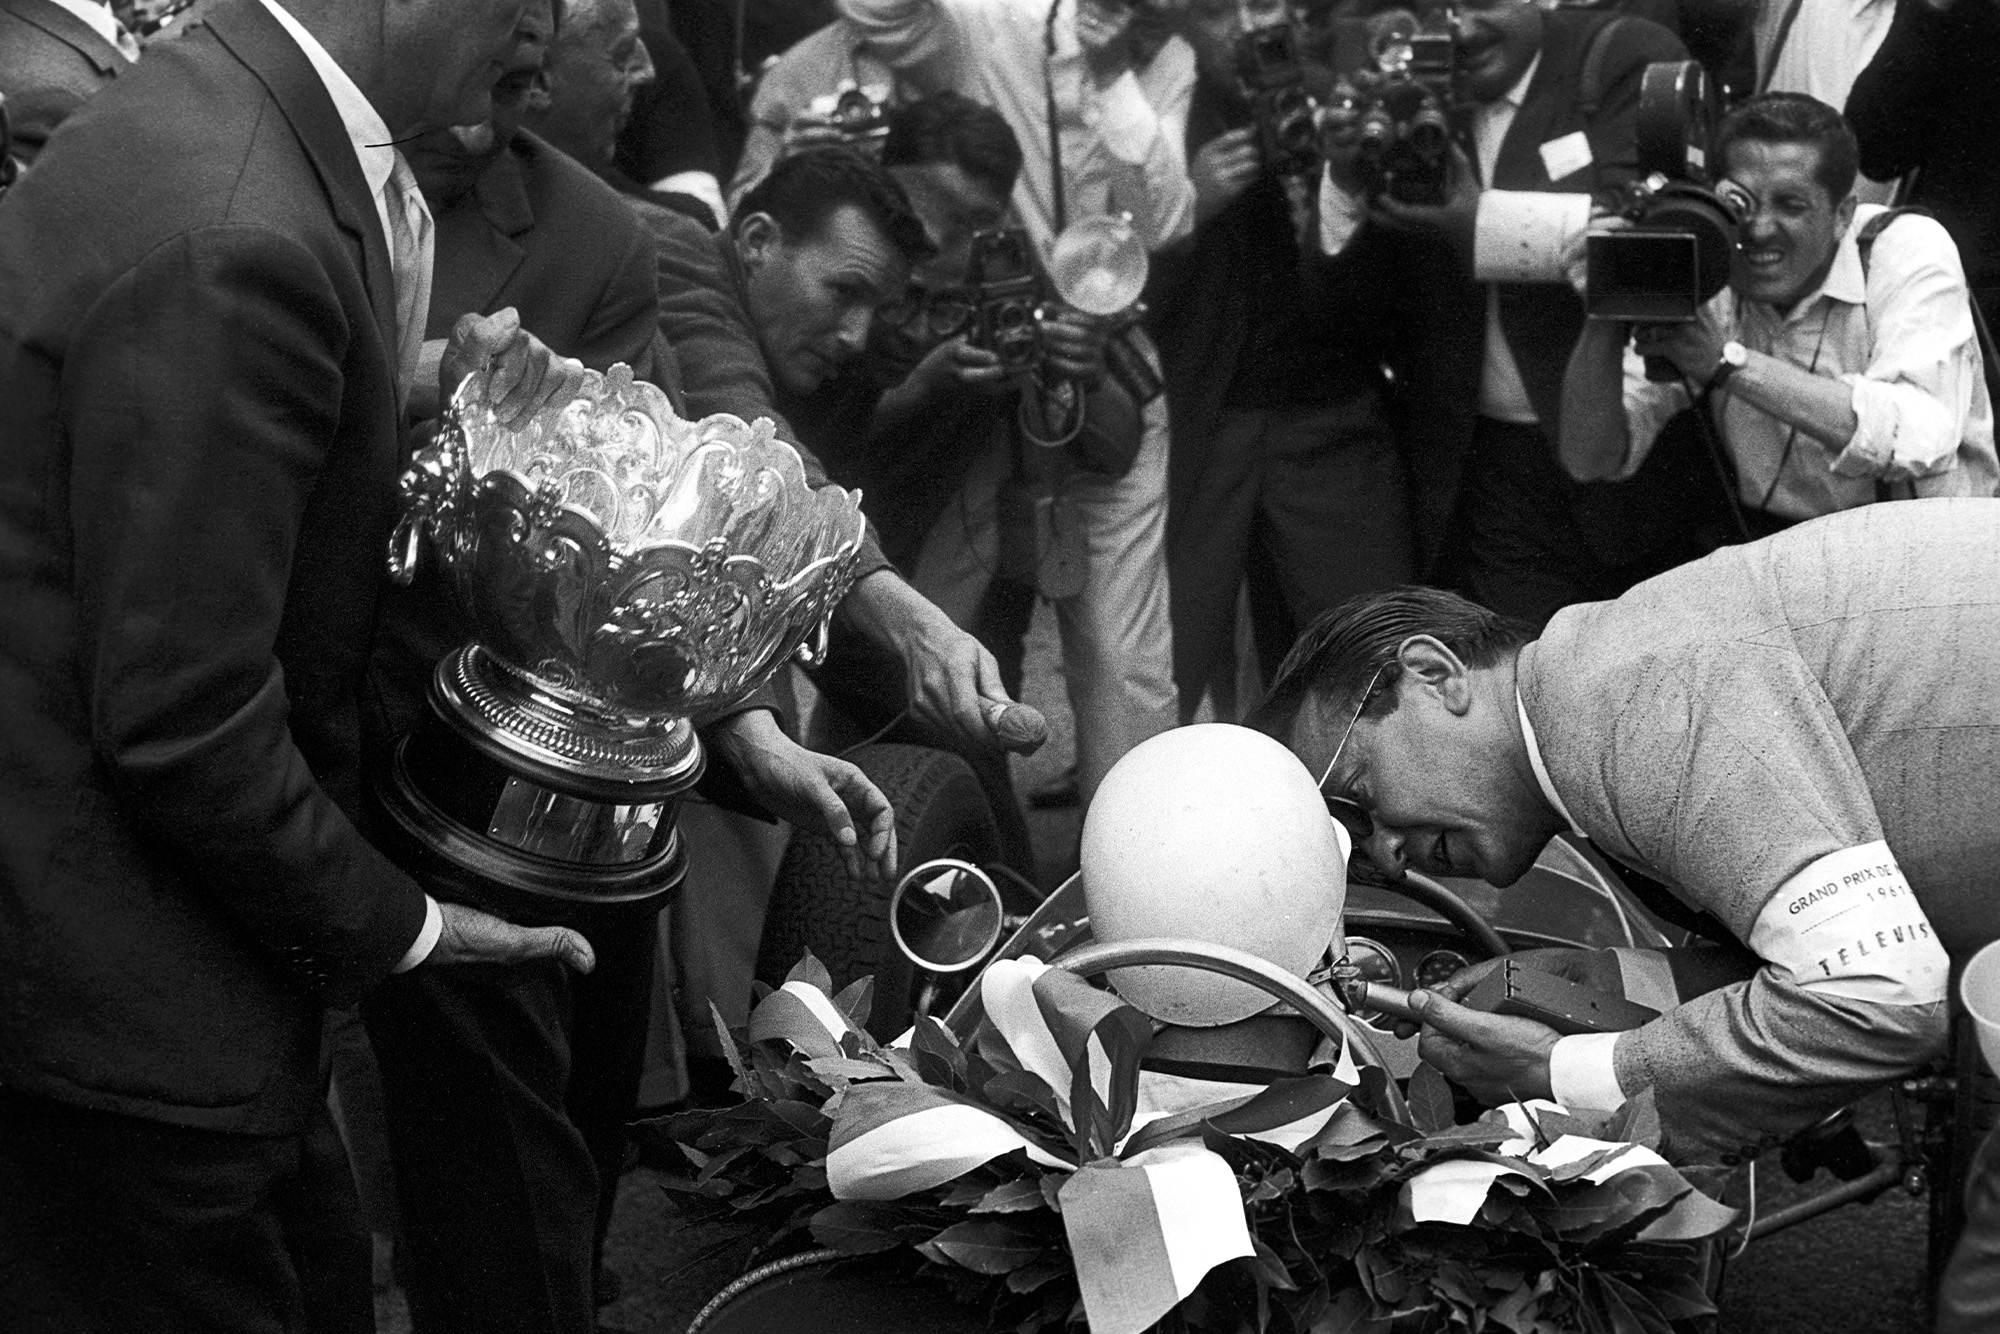 A reporter speaks to Stirling Moss in his Lotus after winning the 1961 Monaco Grand Prix